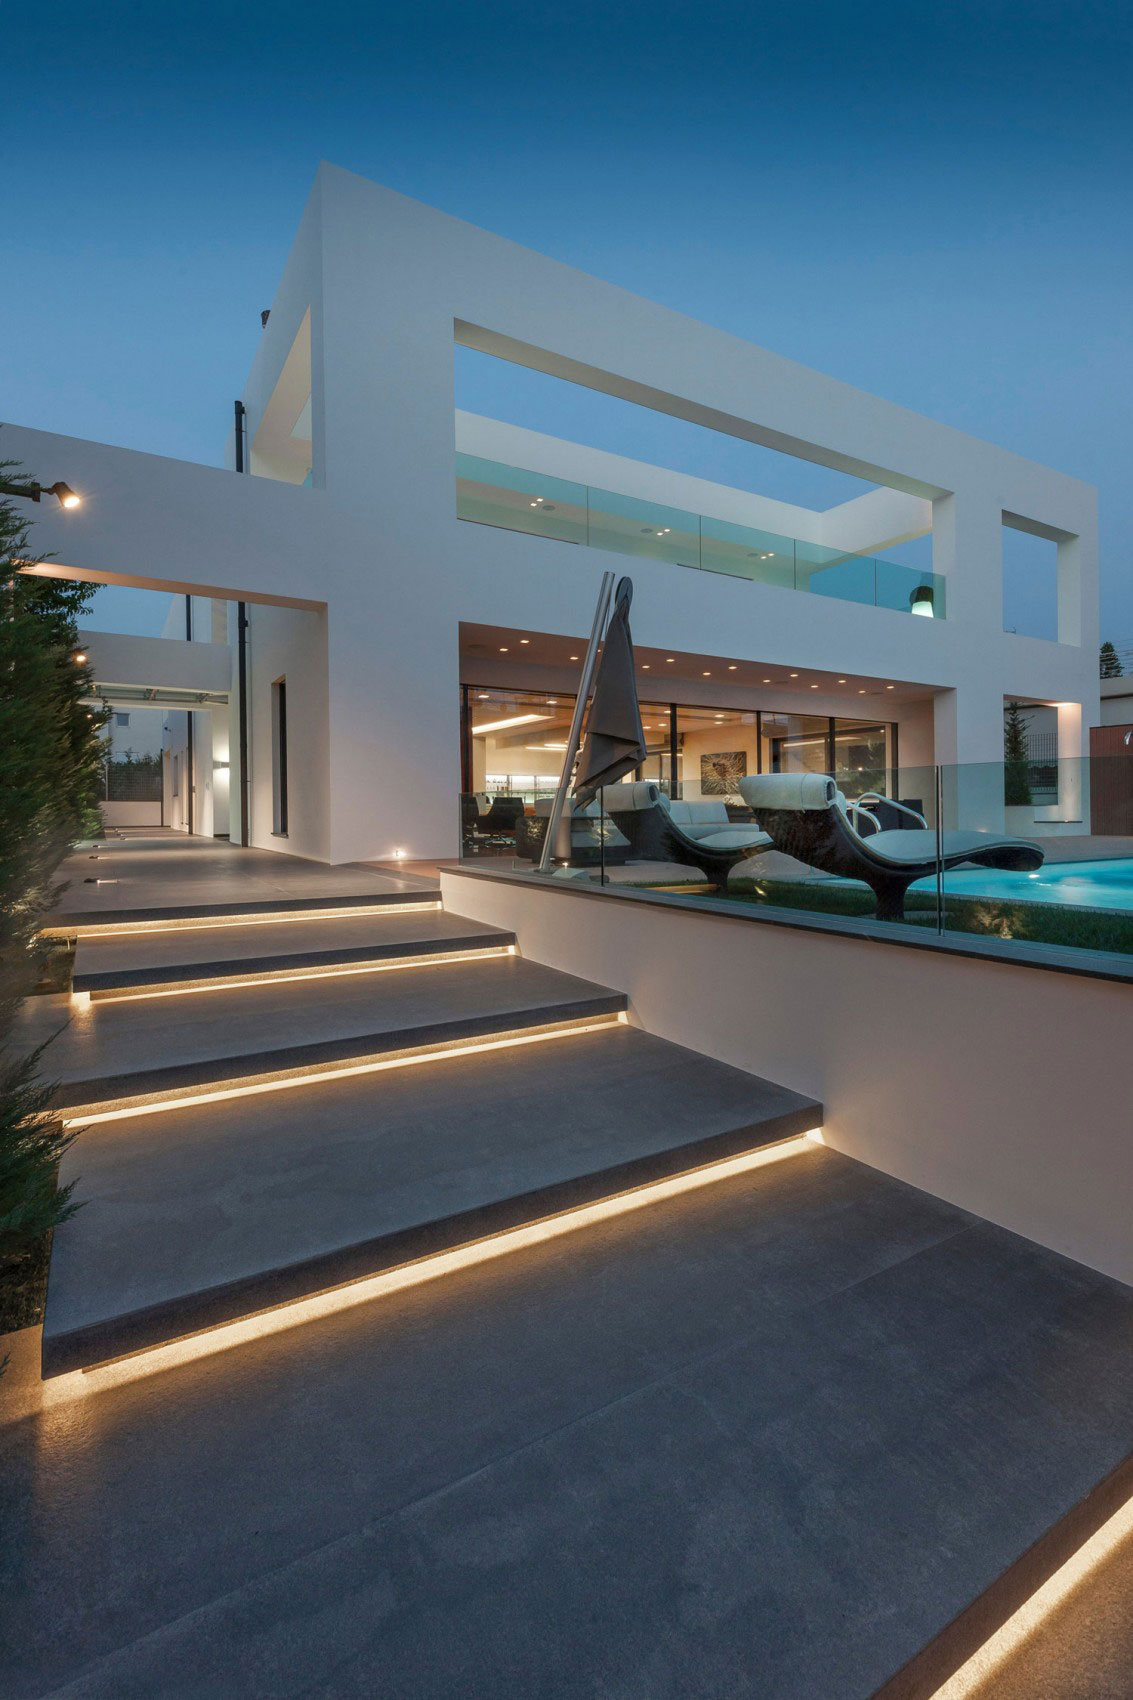 Modern family house by Dolihos Architects-18 Modern family house by Dolihos Architects